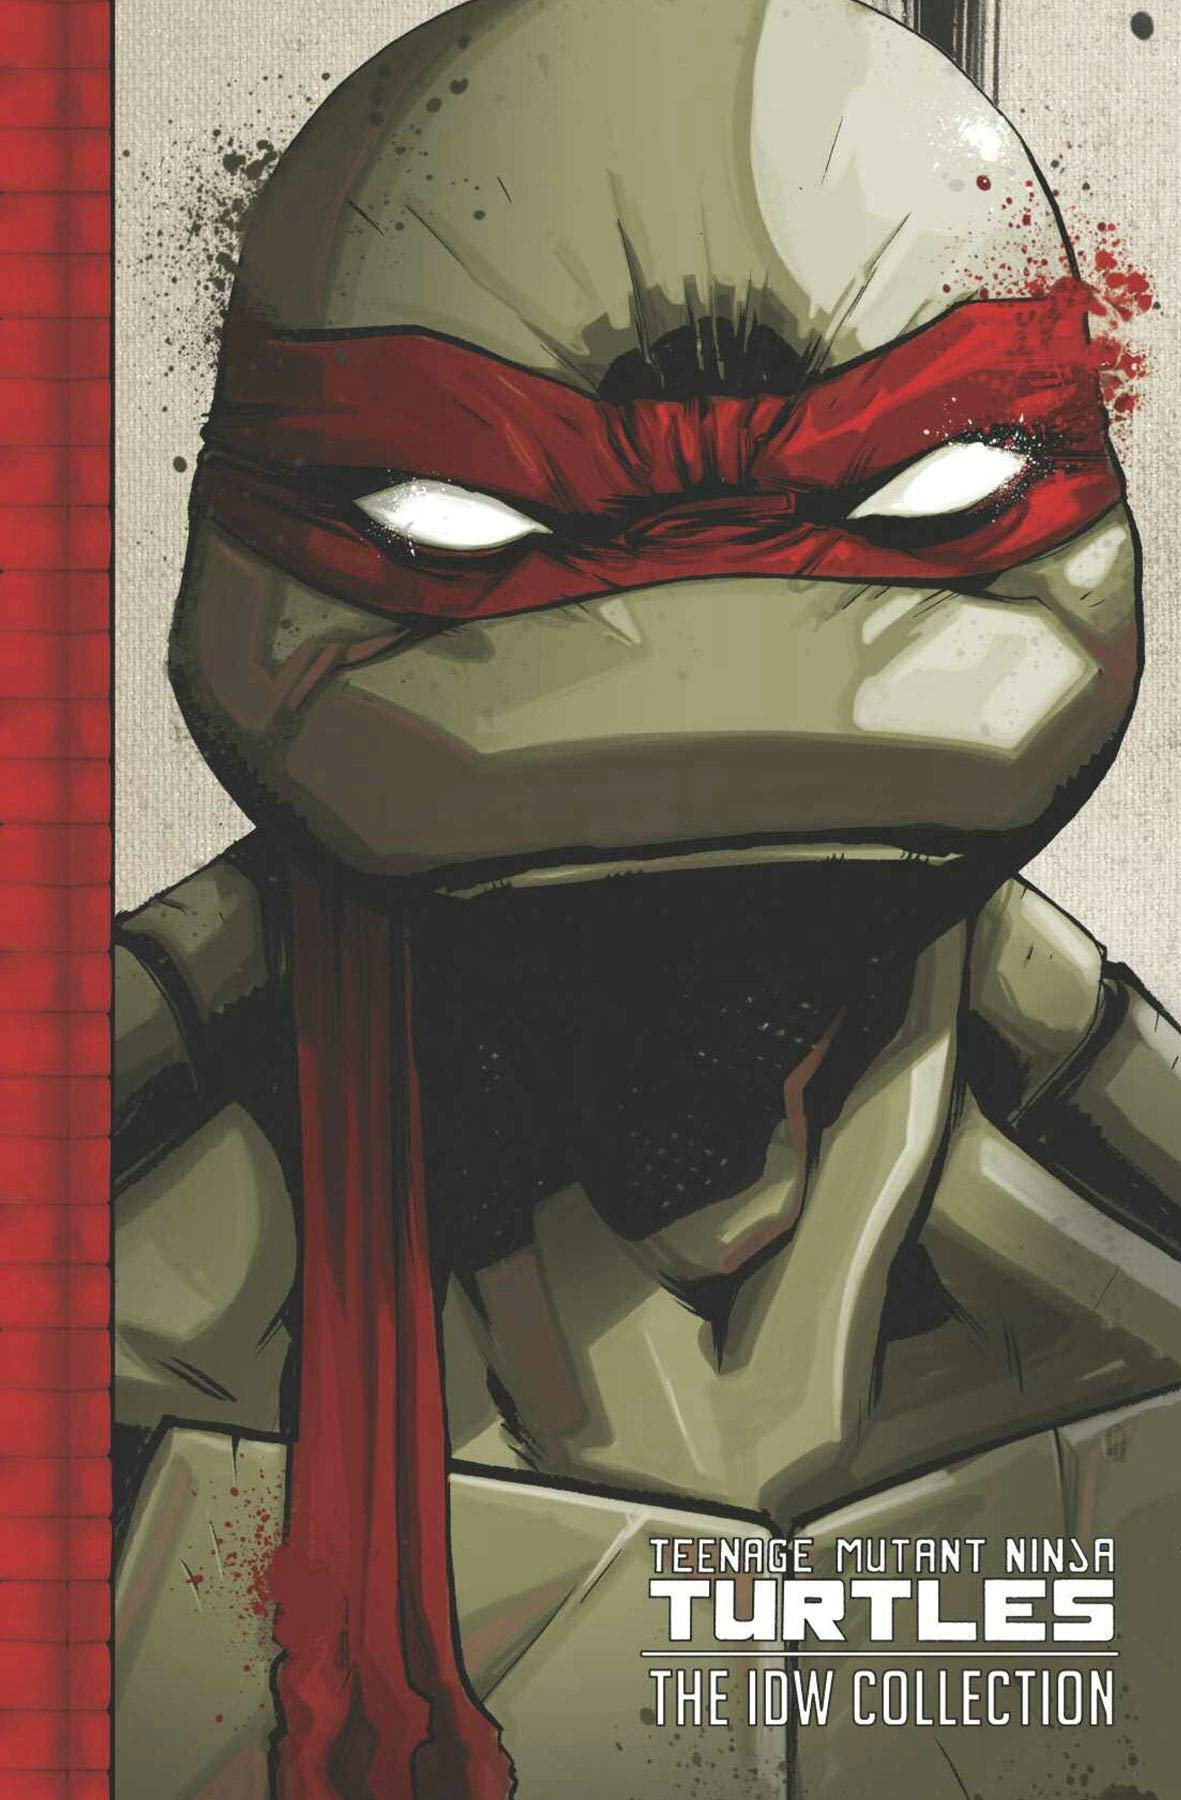 Teenage Mutant Ninja Turtles: The IDW Collection Volume 1 (TMNT IDW Collection) by Nickelodeon